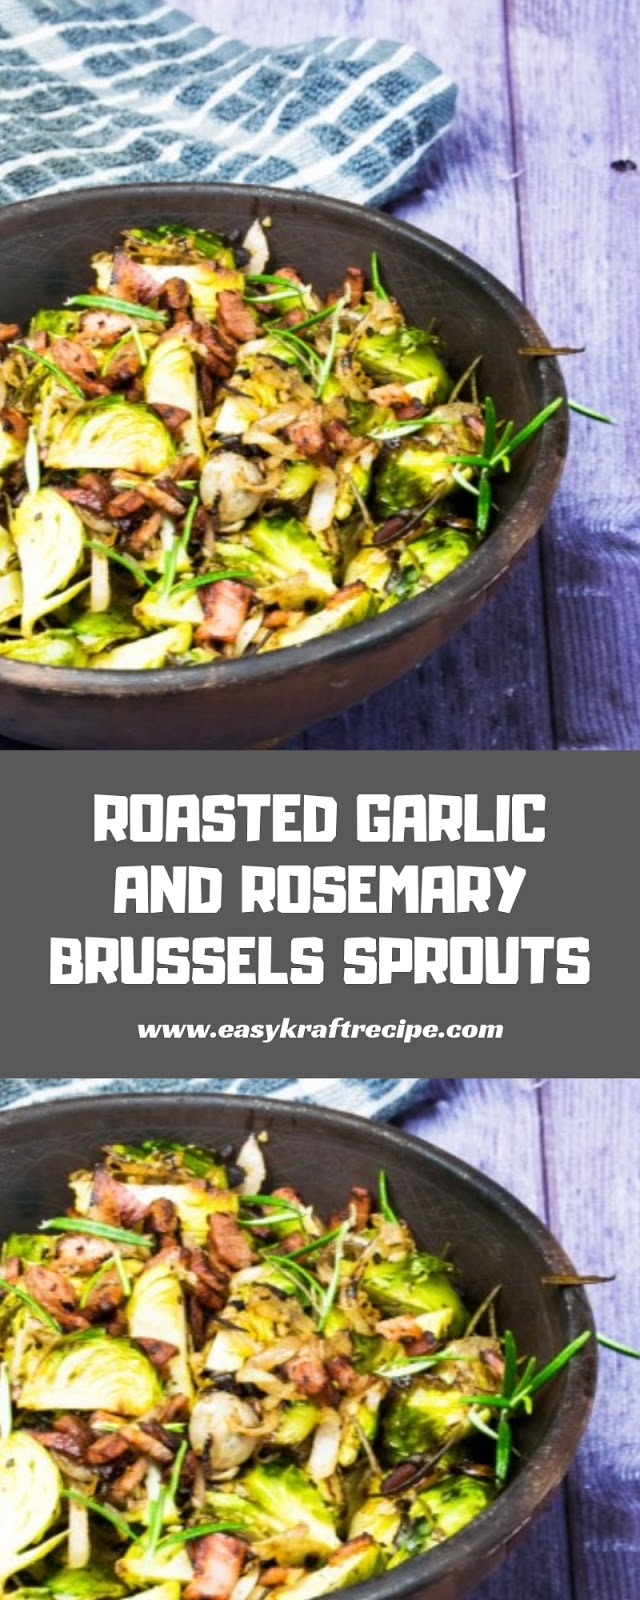 ROASTED GARLIC AND ROSEMARY BRUSSELS SPROUTS